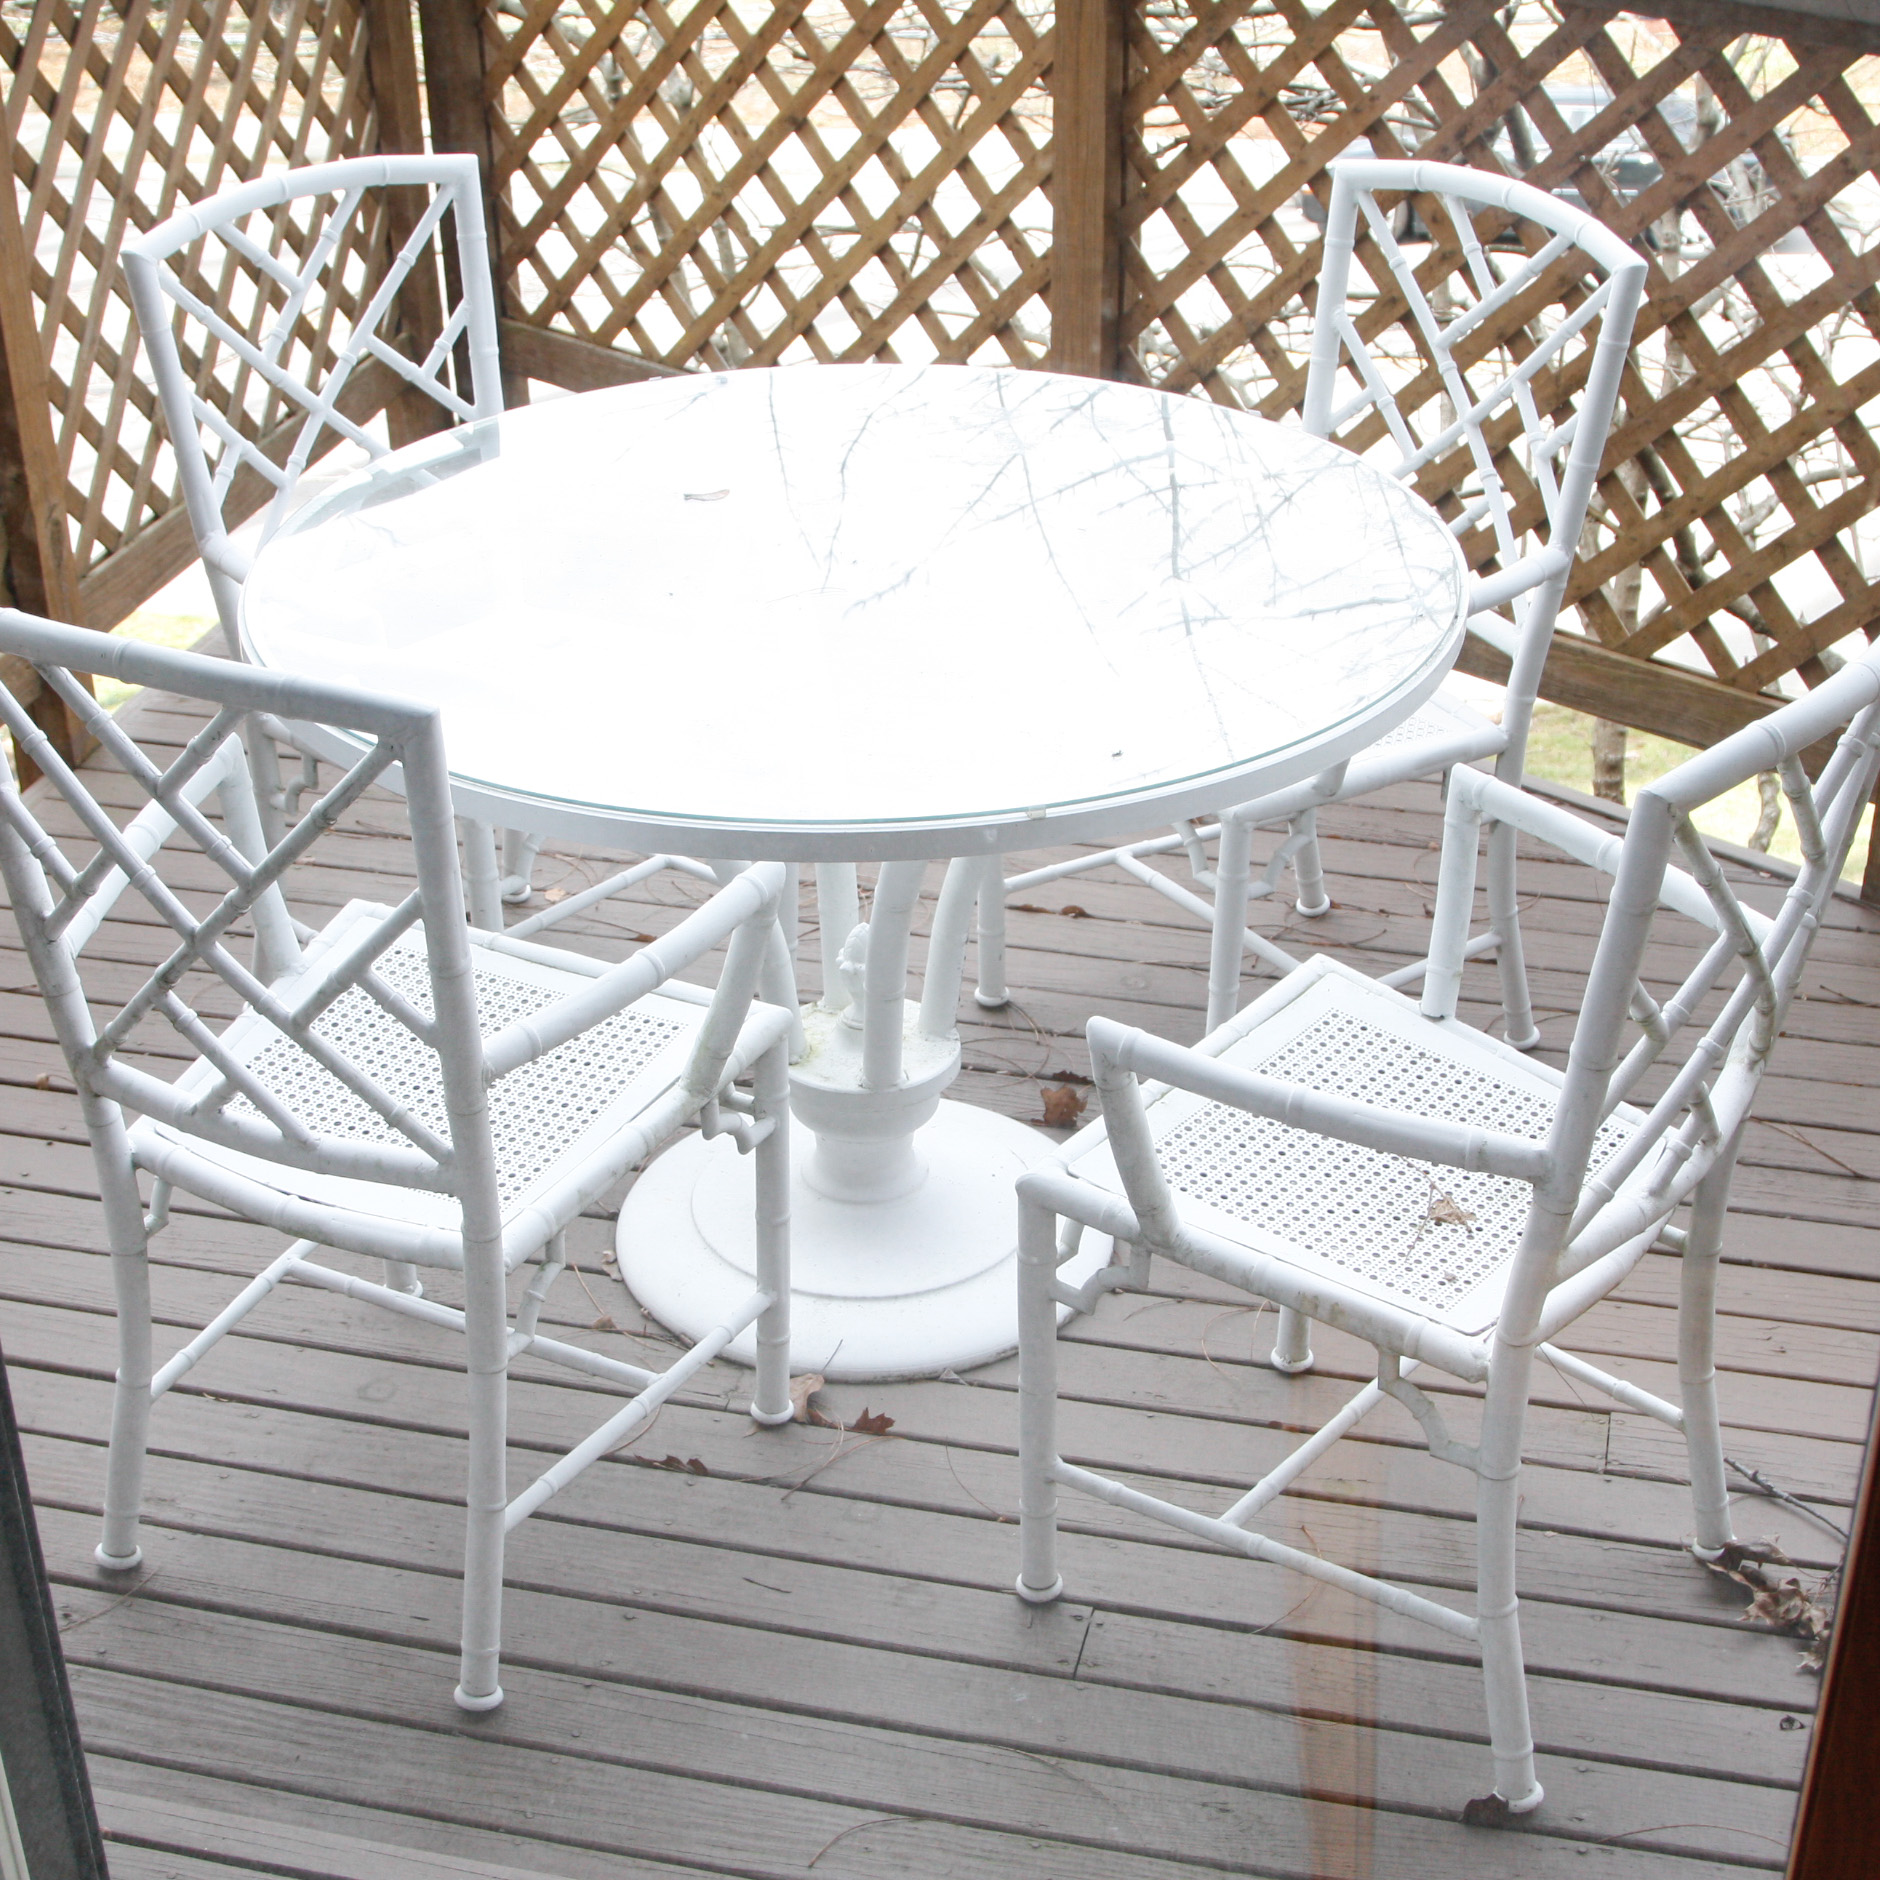 bamboo outdoor chairs carlyle chair side end table white metal patio dining set ebth